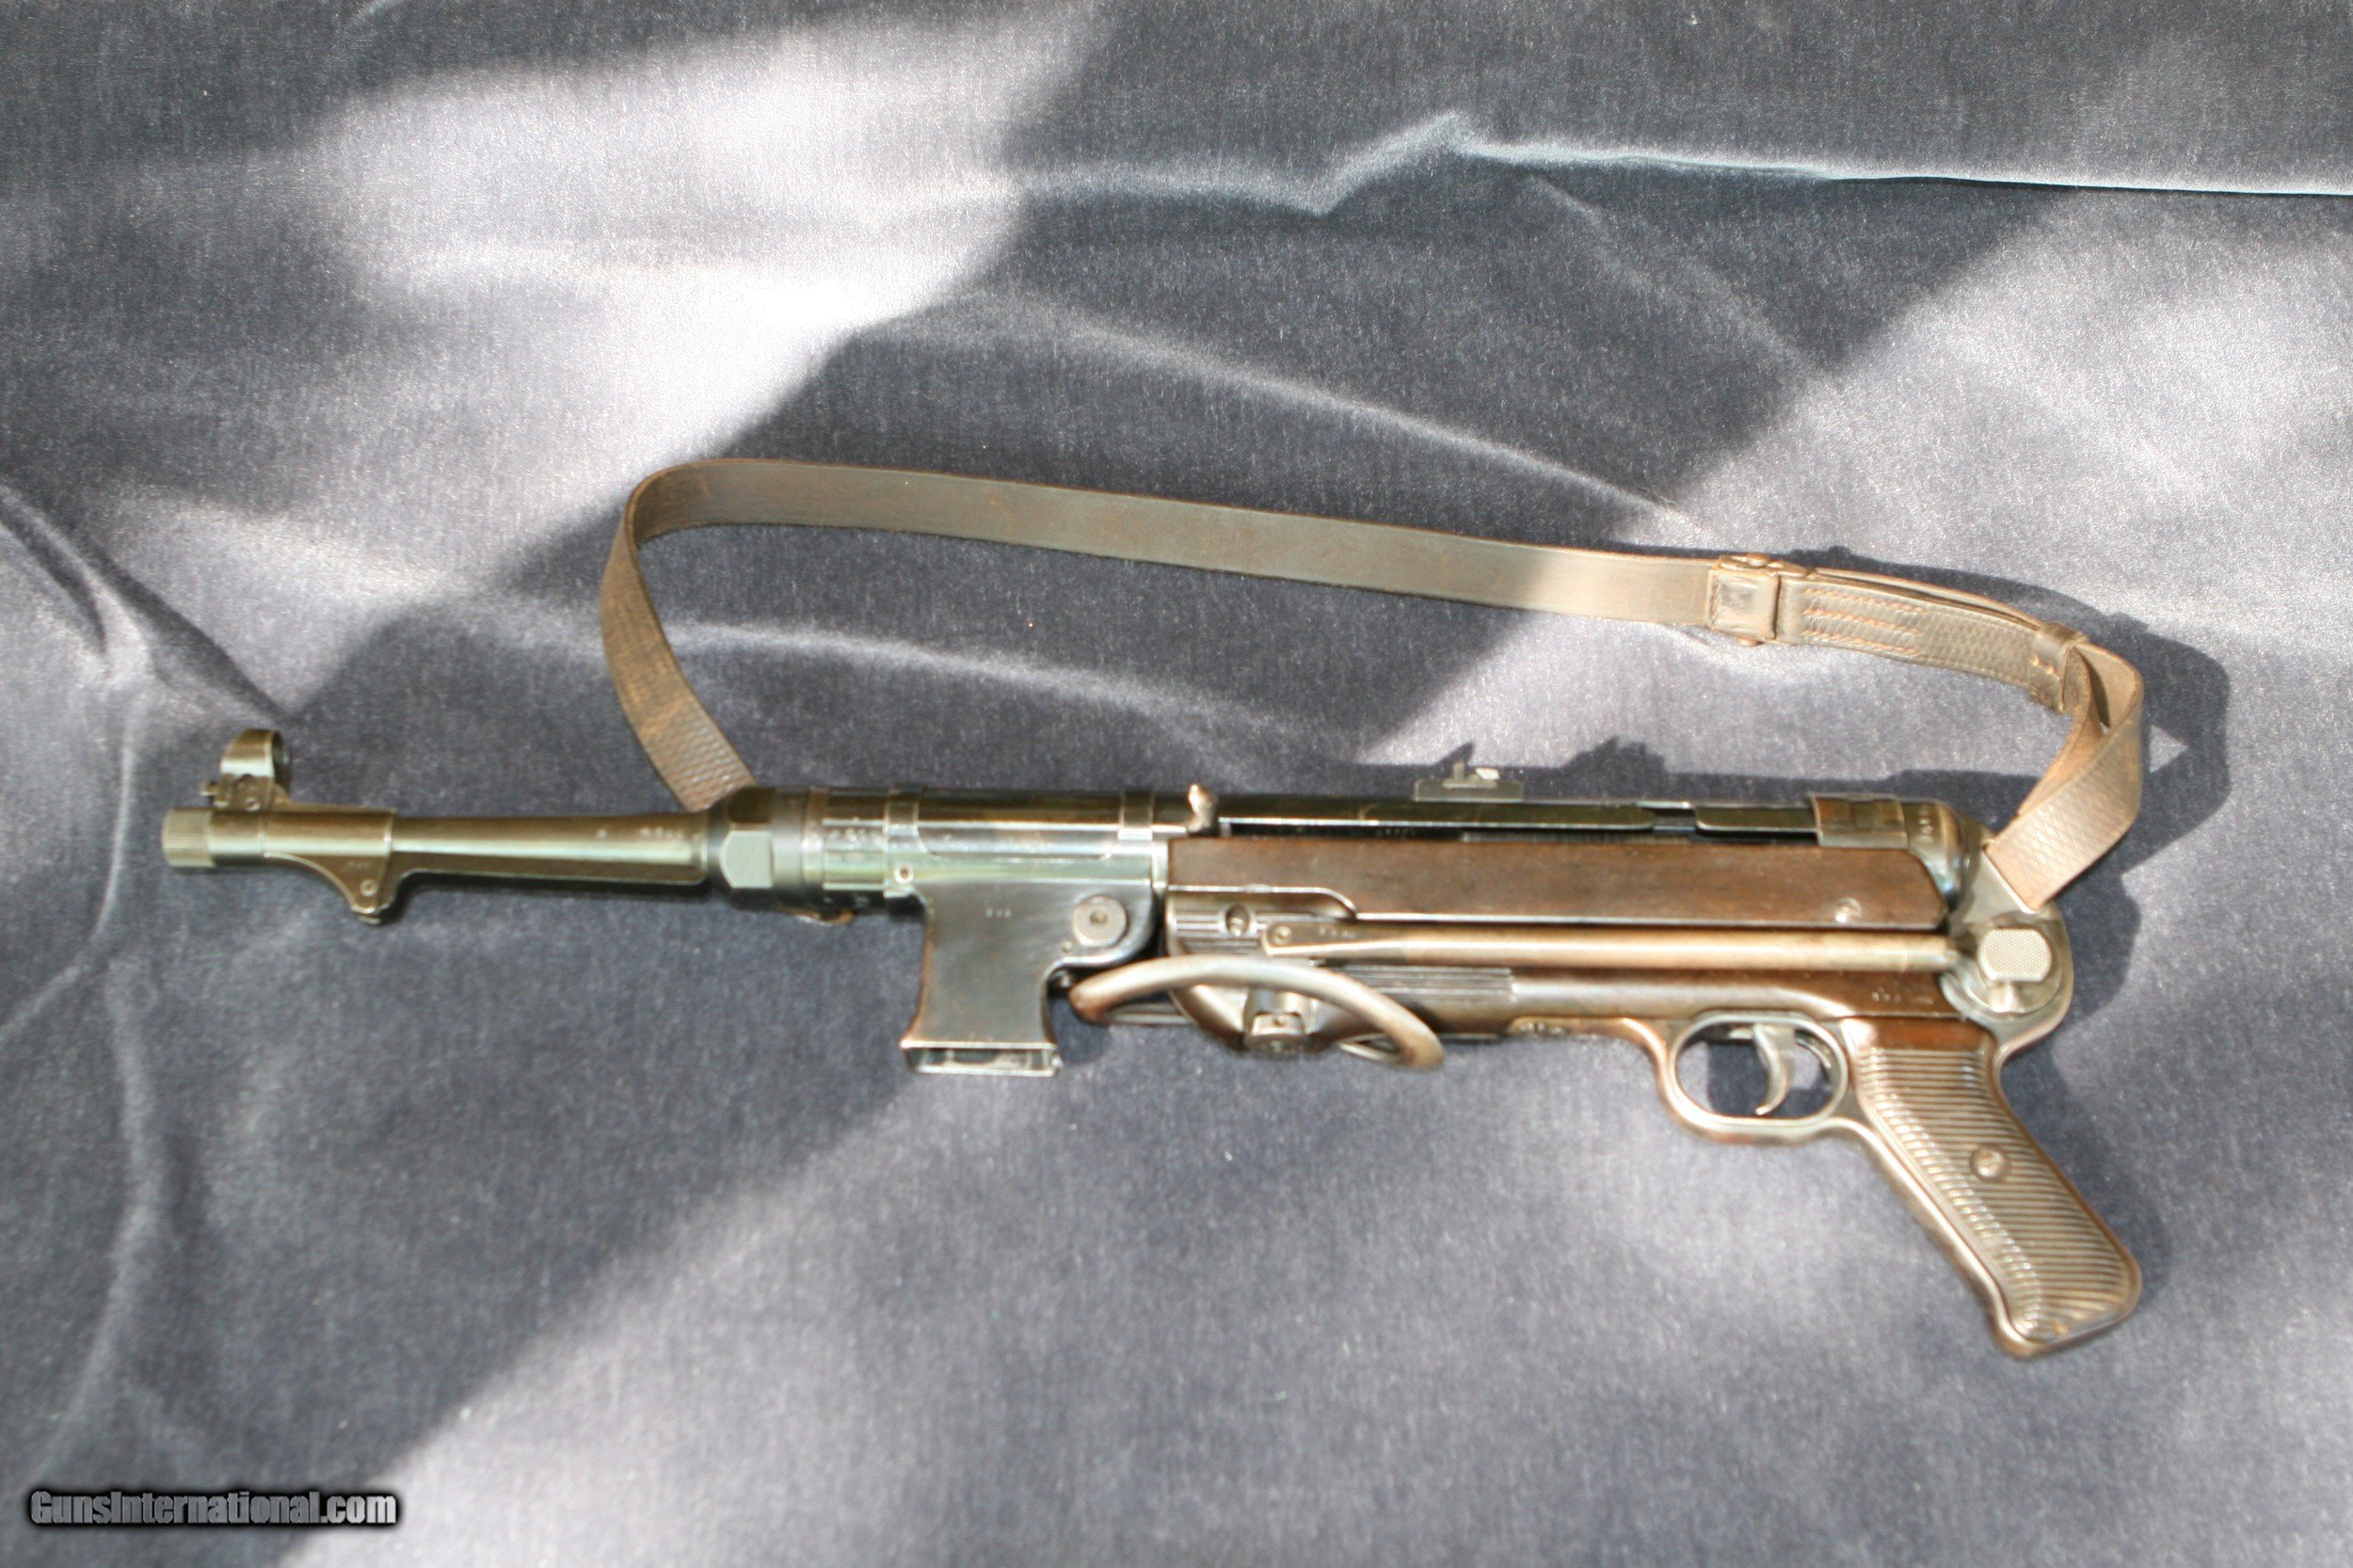 MP40 for sale